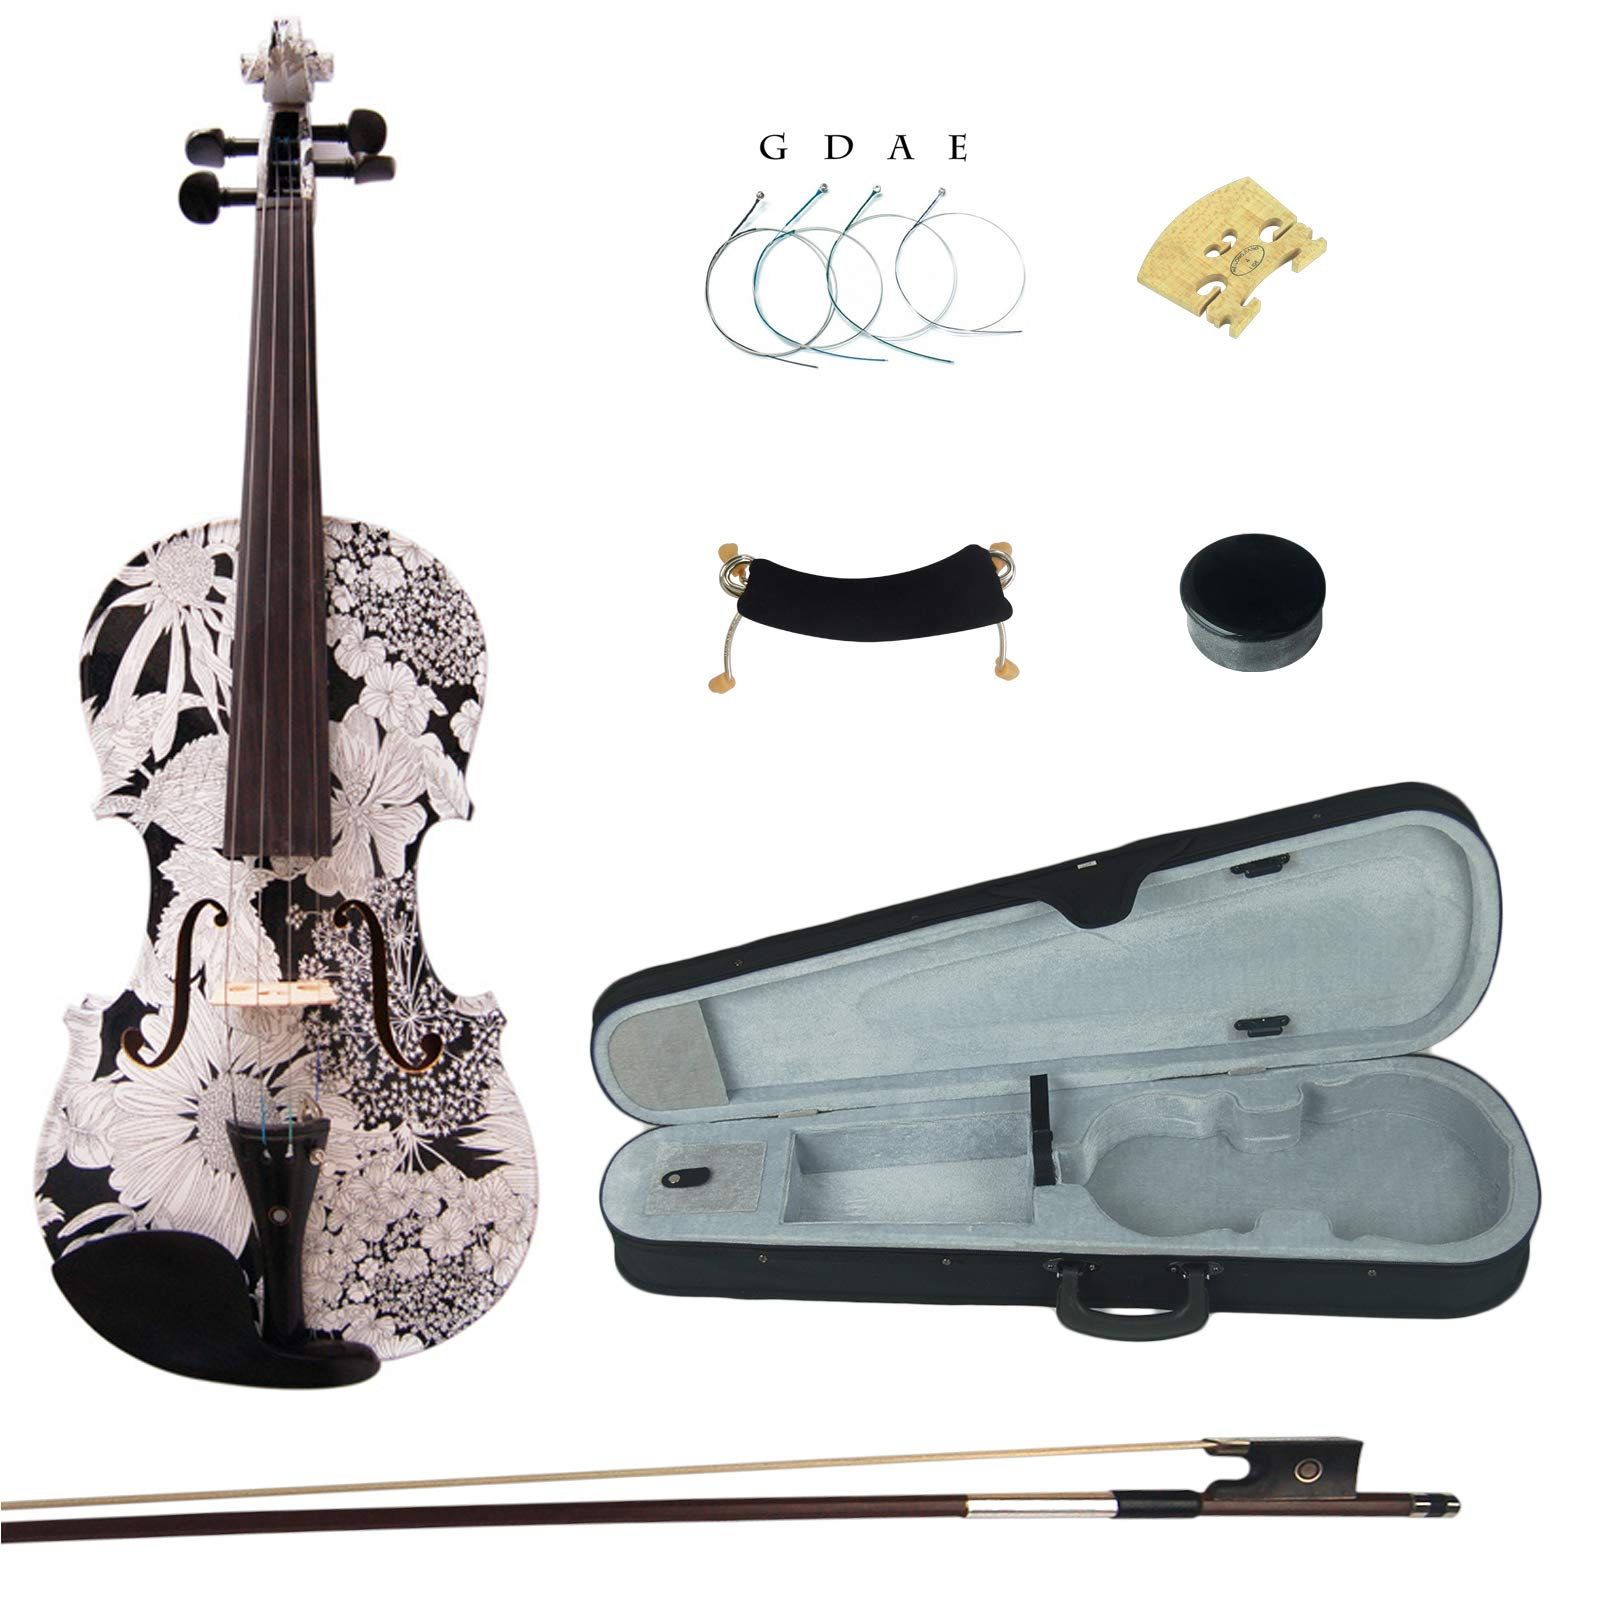 Kinglos 4/4 Black Grid Colored Ebony Fitted Solid Wood Violin Kit with Case, Shoulder Rest, Bow, Rosin, Extra Bridge and Strings Full Size (HB1310)